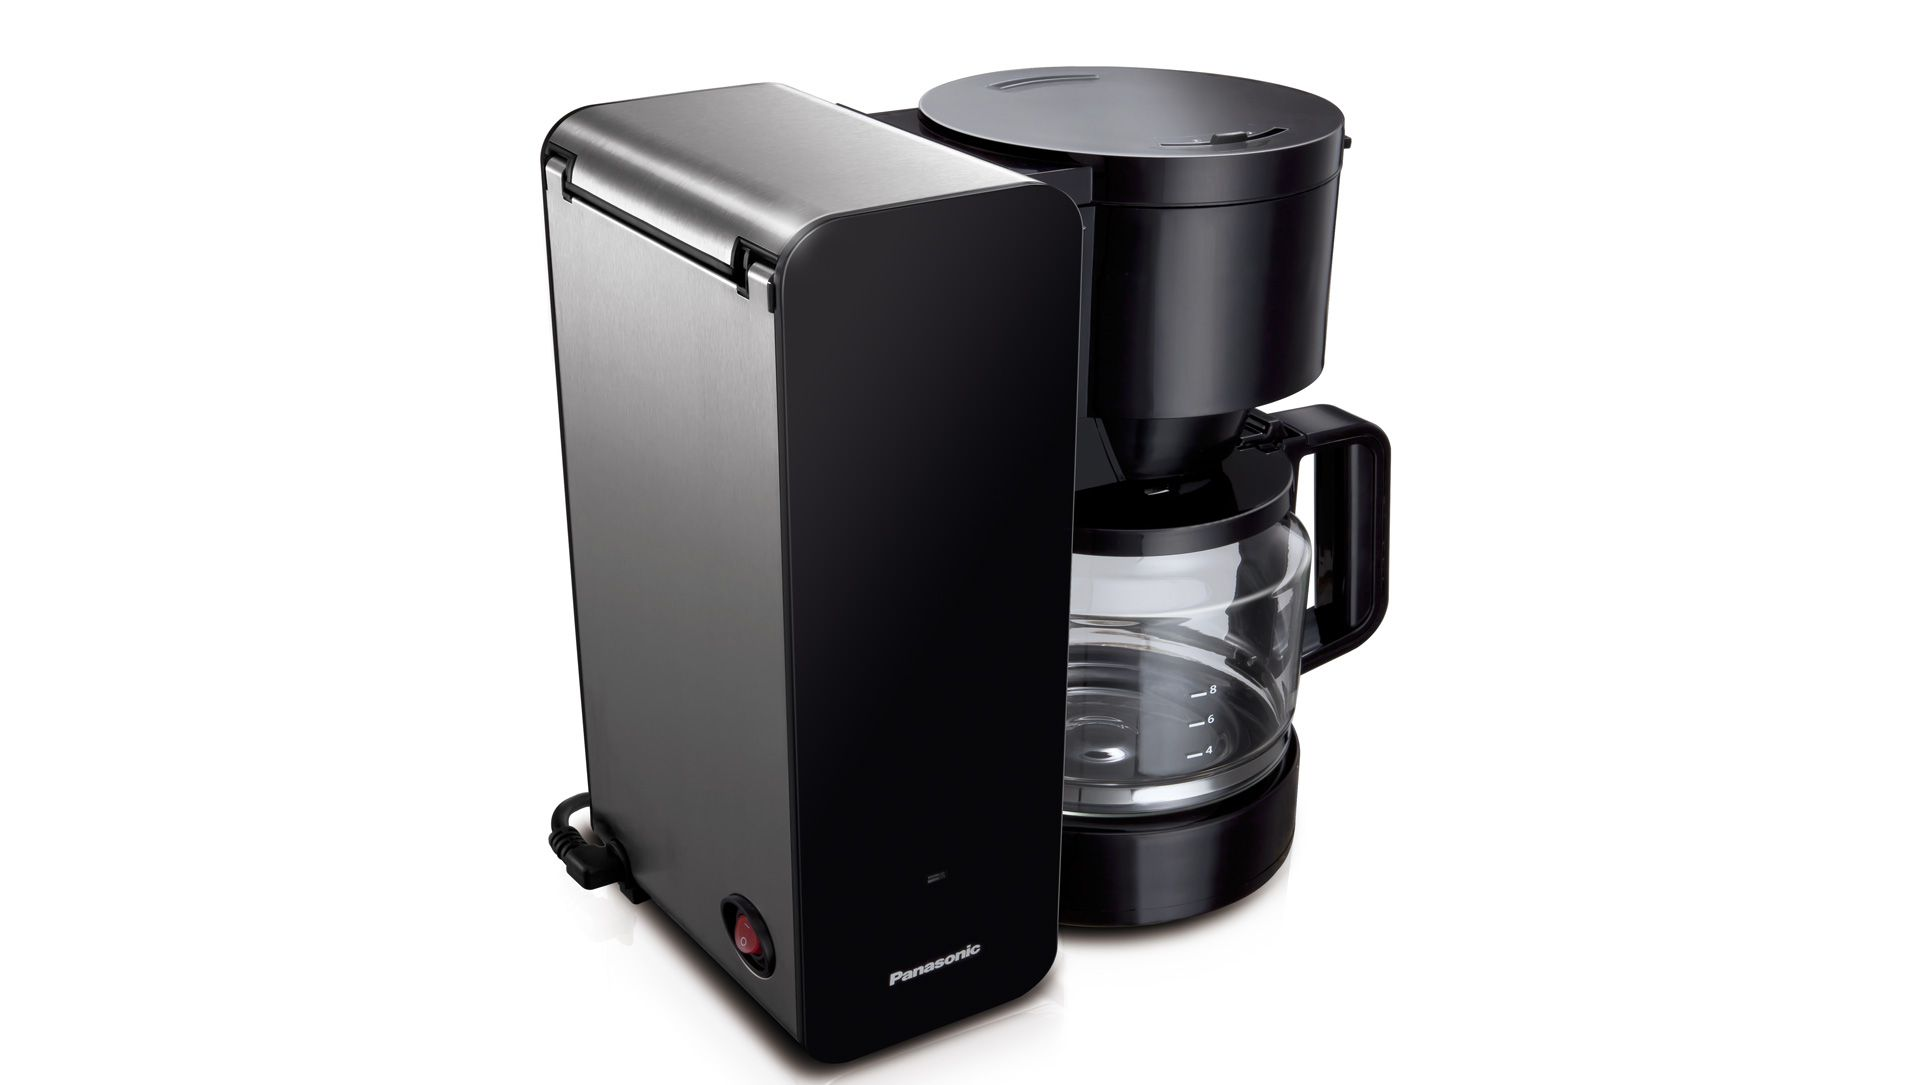 Panasonic Challenge Conventional Toaster, Kettle and Coffee Maker ...